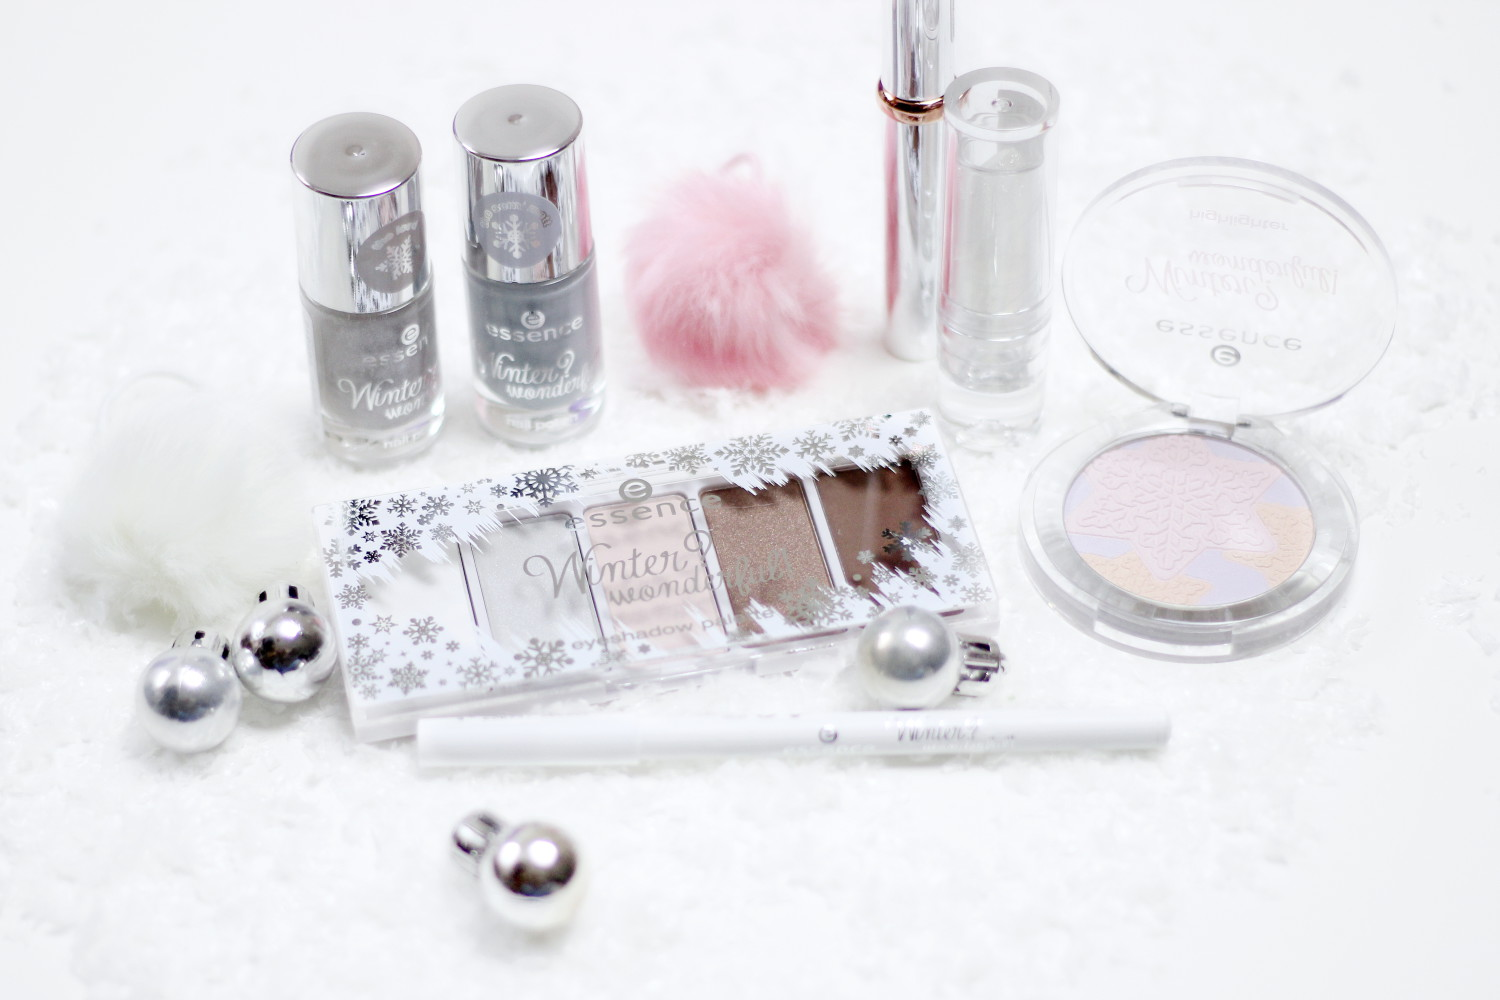 bezauberndenana-fashionblog-beautyblog-beauty-essence-winter-wonderful-le-make-up (8)